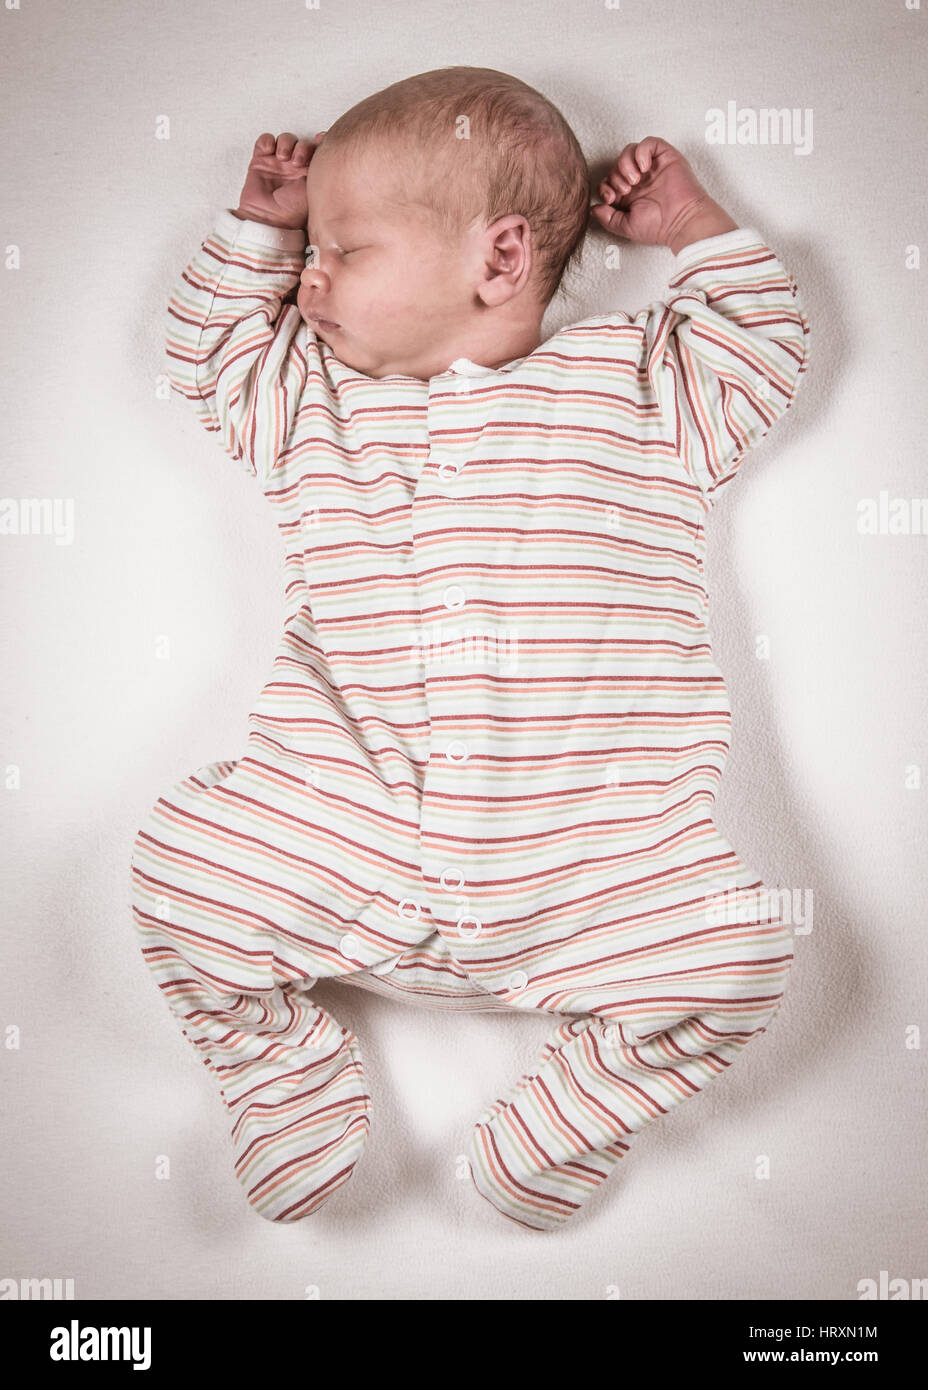 Baby asleep stretched out in a babygrow - Stock Image